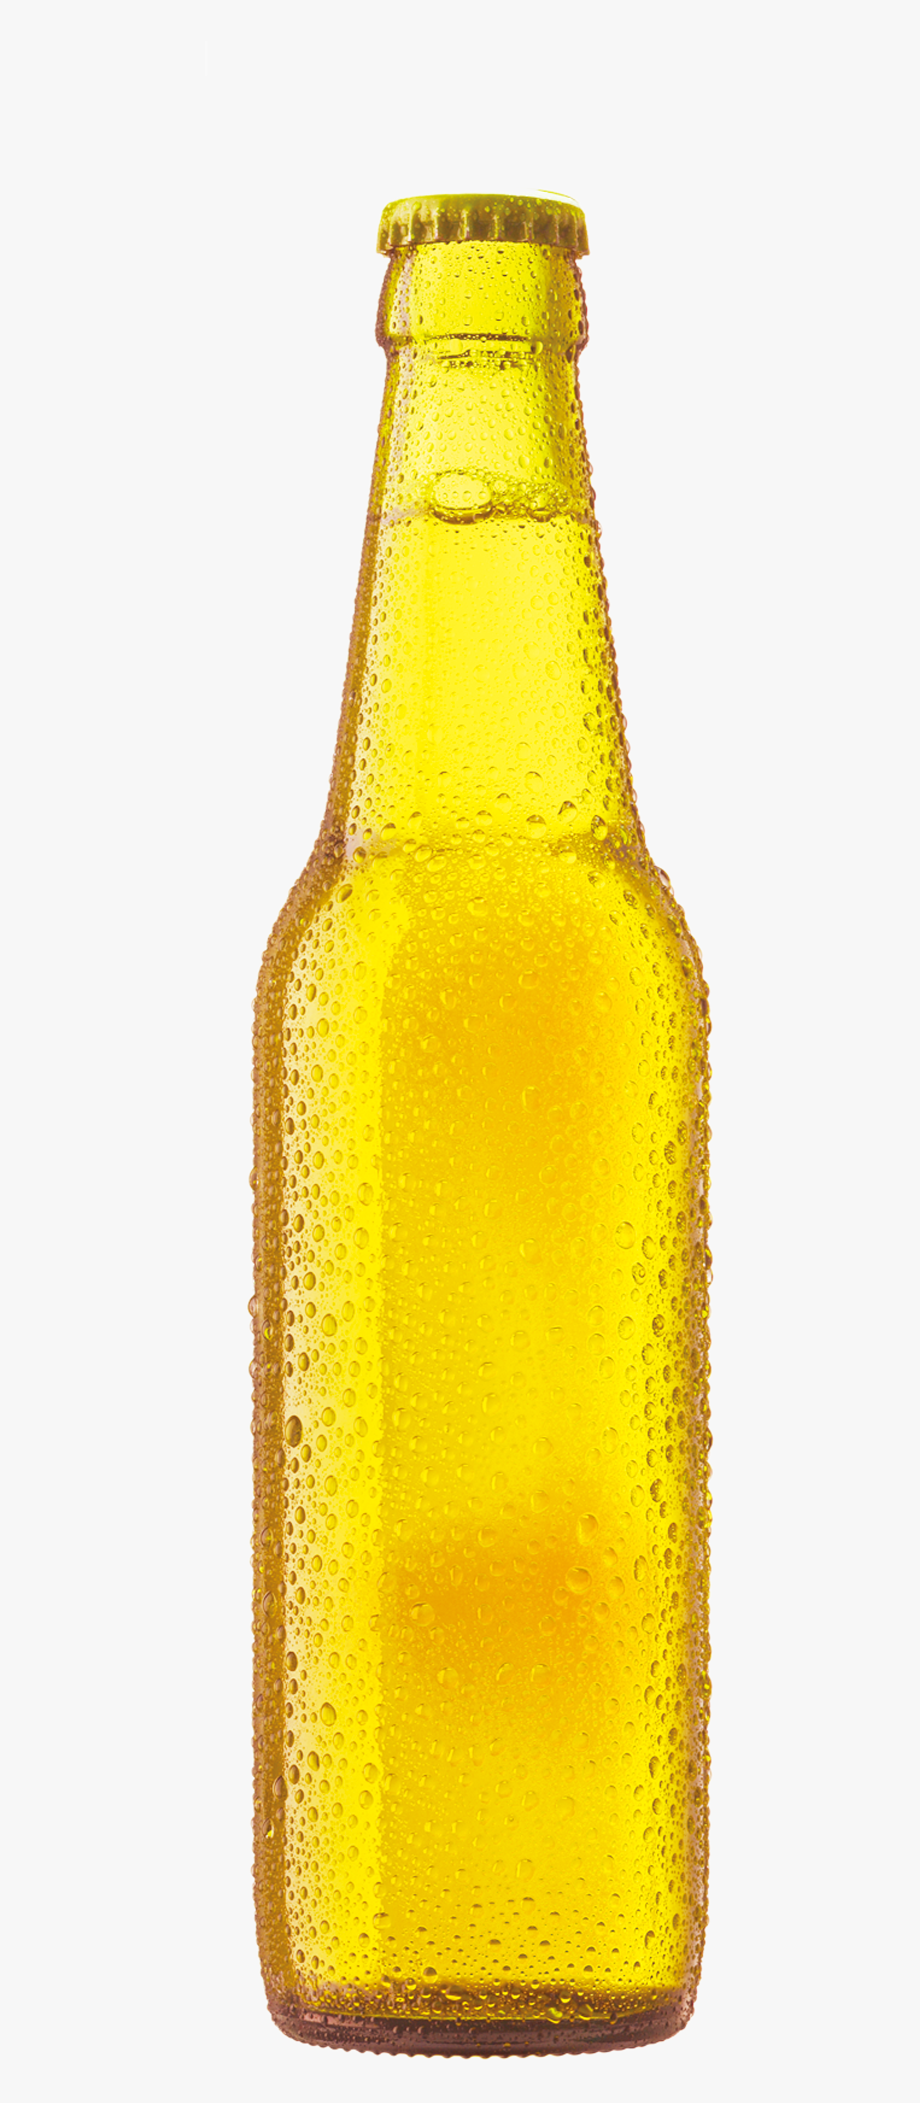 Beer Bottle Cup Free Clipart Hq Clipart.